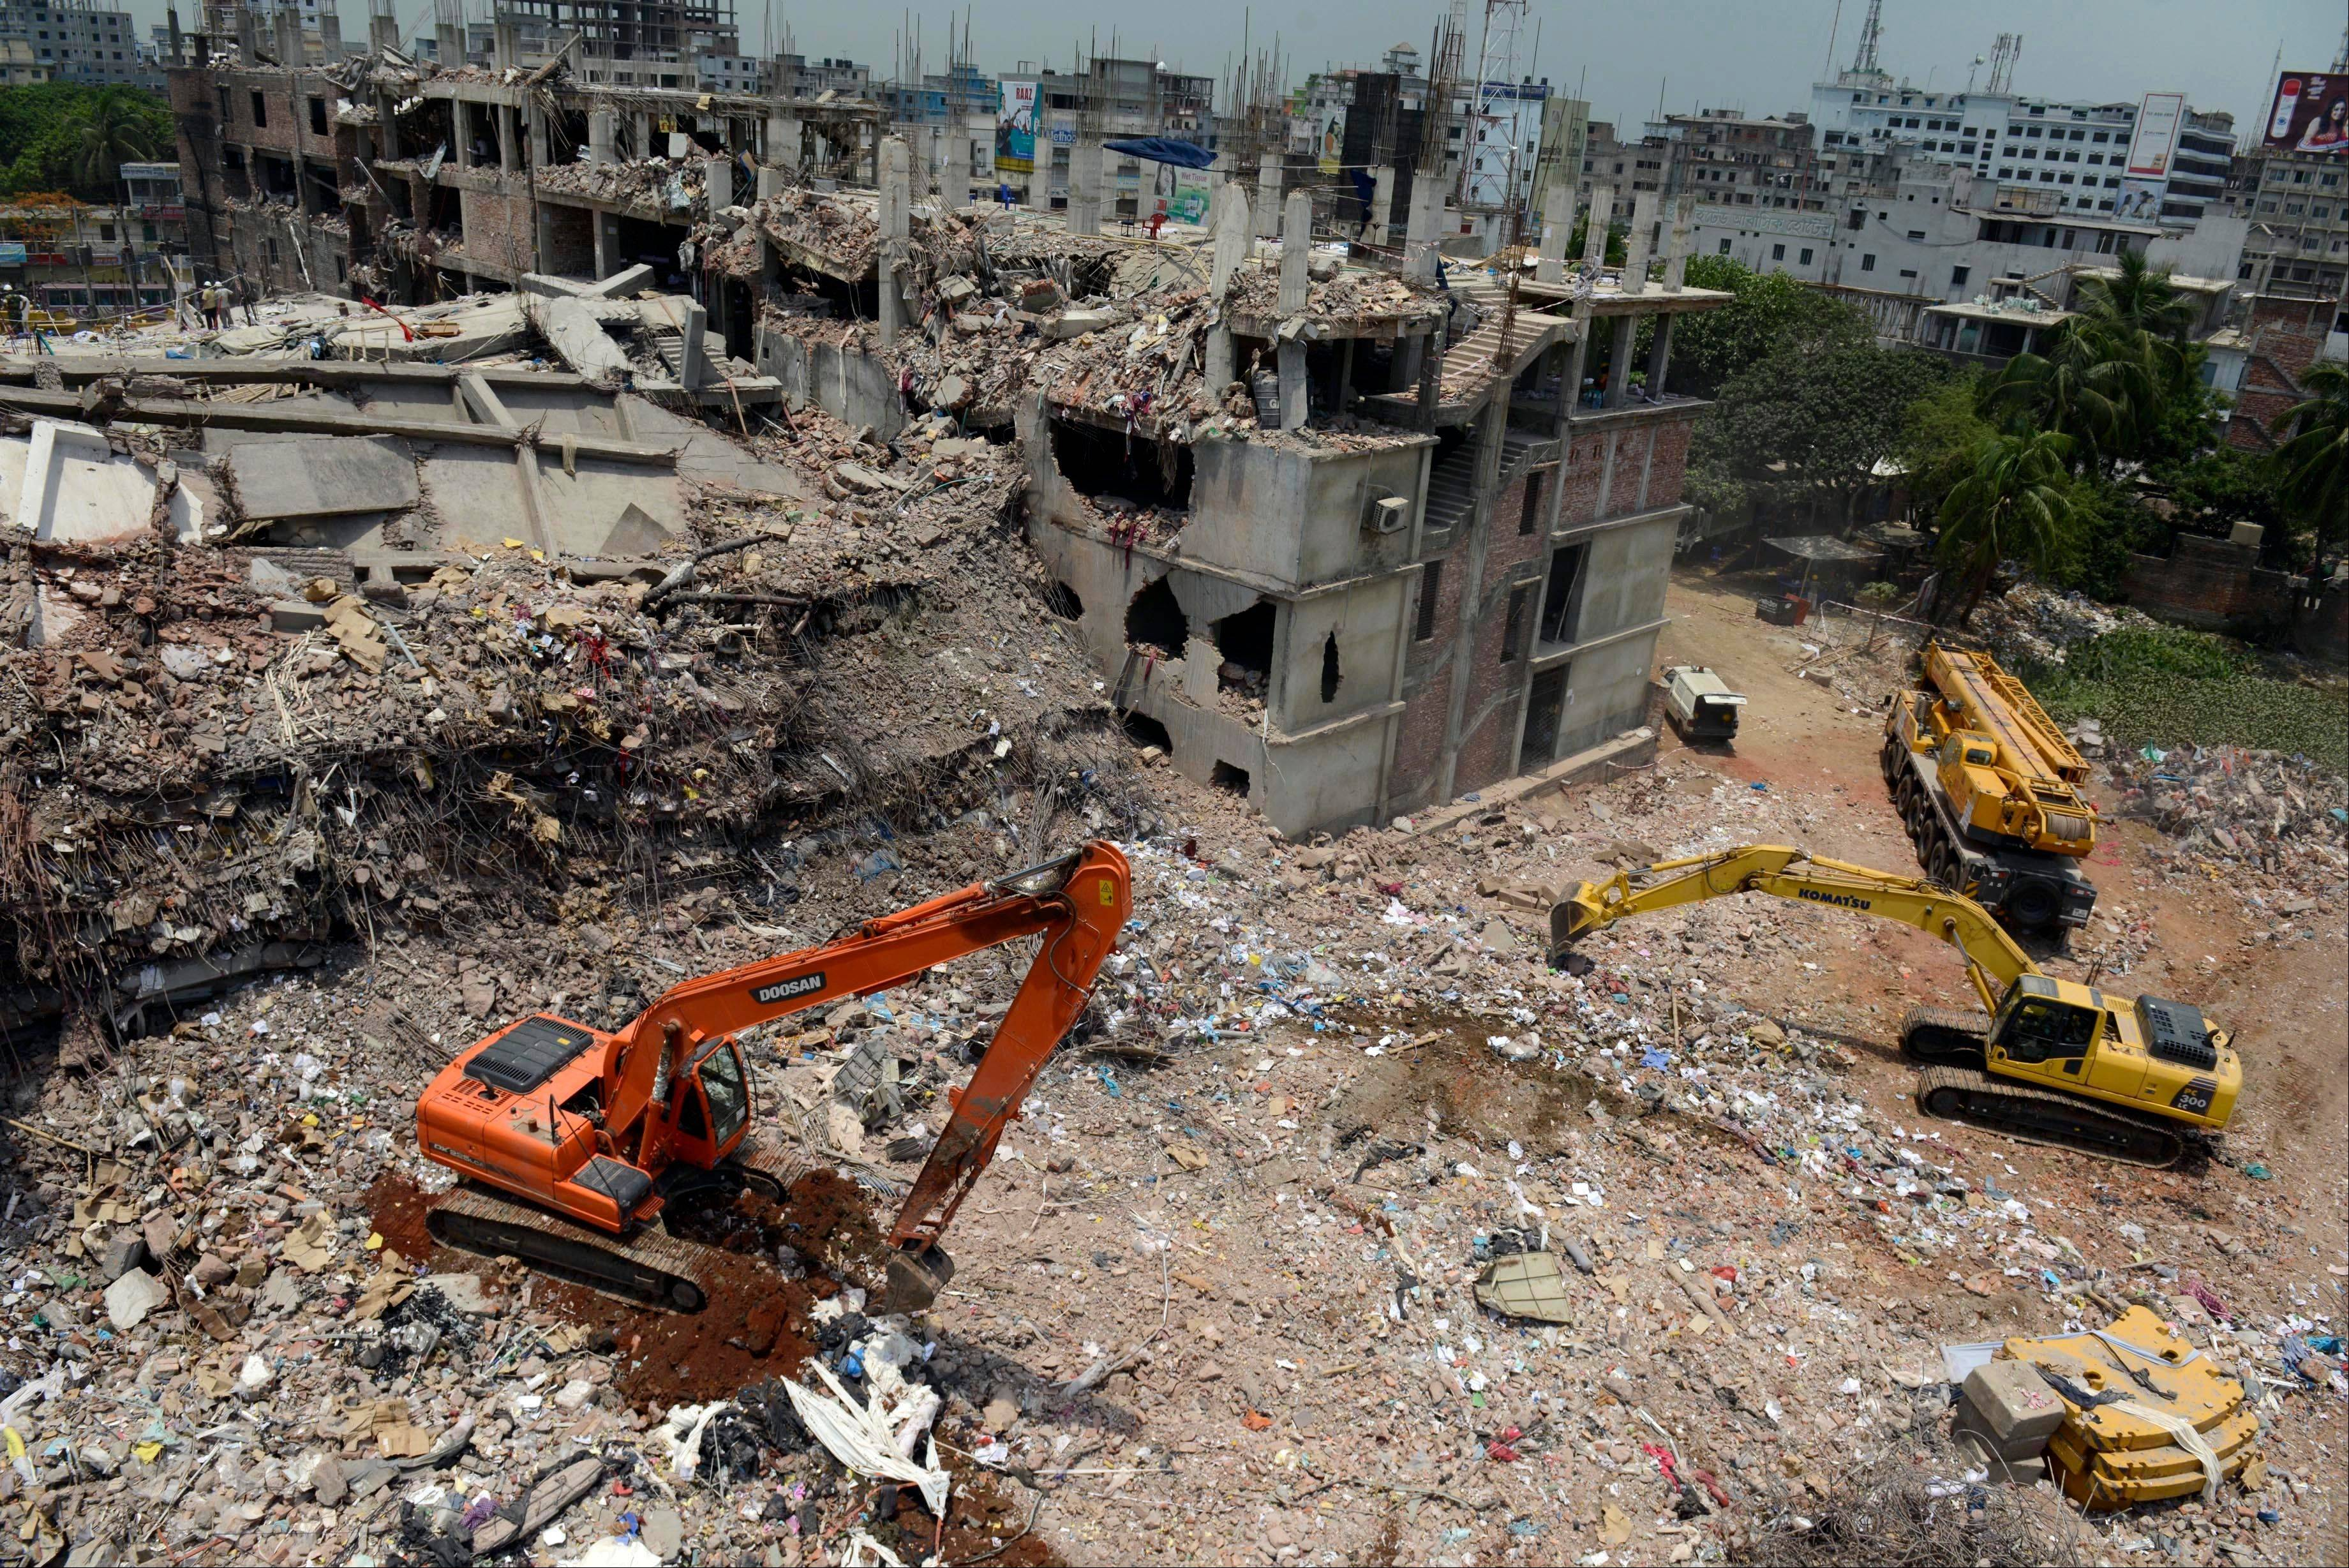 Earth movers work to remove rubble at the site of a garments factory that collapsed in Savar near Dhaka, Bangladesh, Friday, May 3, 2013. More than 500 bodies have been recovered from the debris of the building.